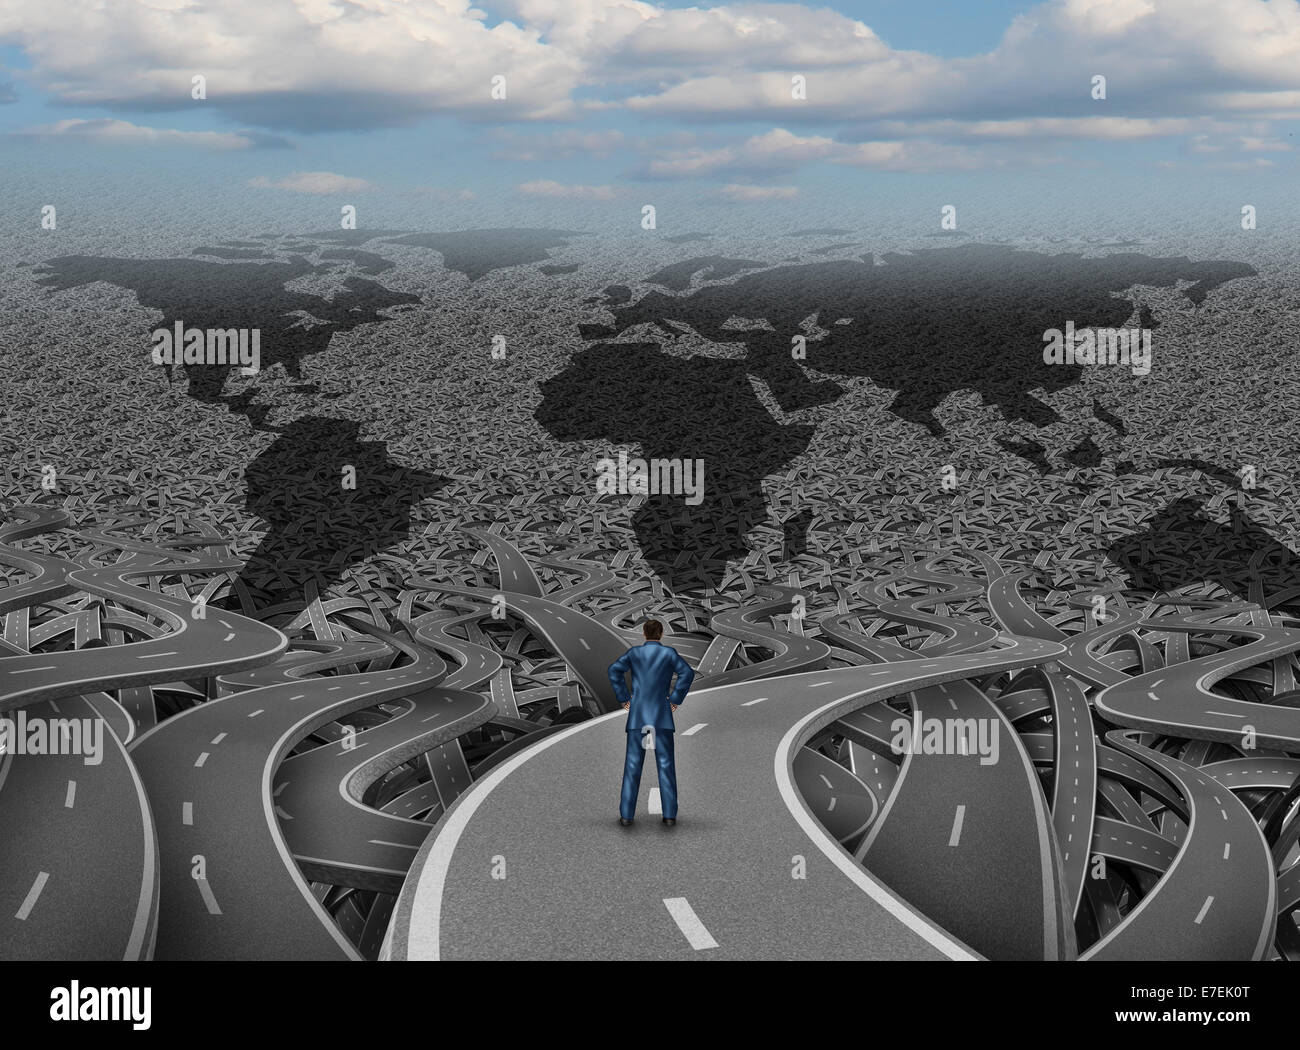 Global direction and world businessman road concept as a group of tangled highways with a confused man standing - Stock Image